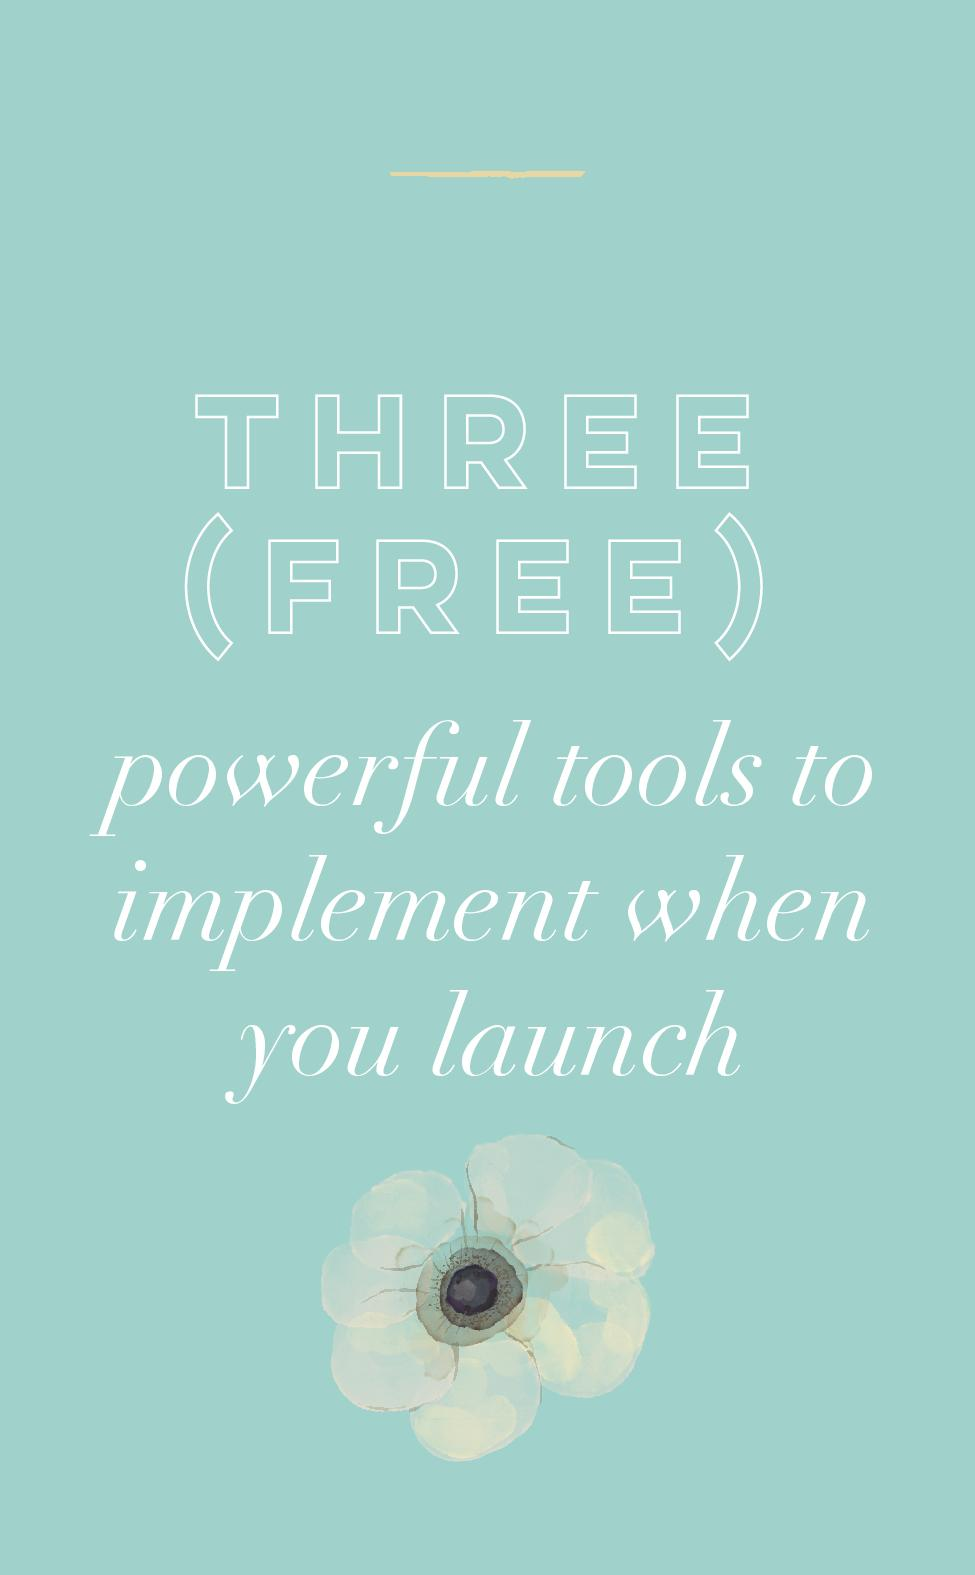 Three (Free) Powerful Tools to Implement When You Launch.jpg